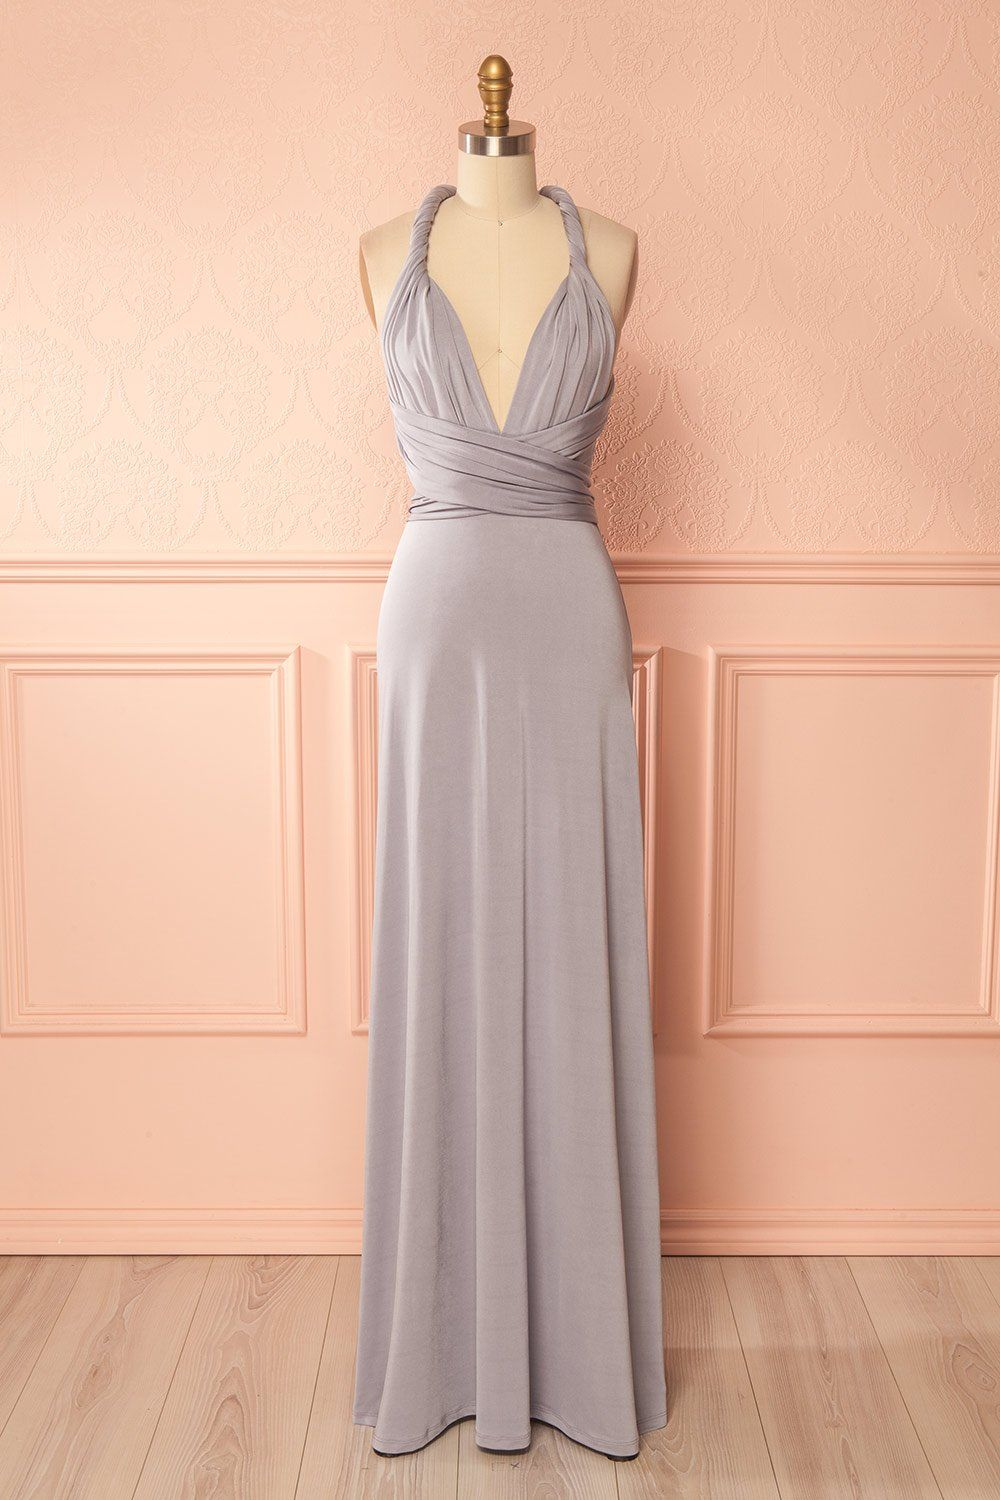 65d3646dcd Nela Gris  boutique1861   Explore your creativity with this evening gown  featuring a shimmering color and a silky